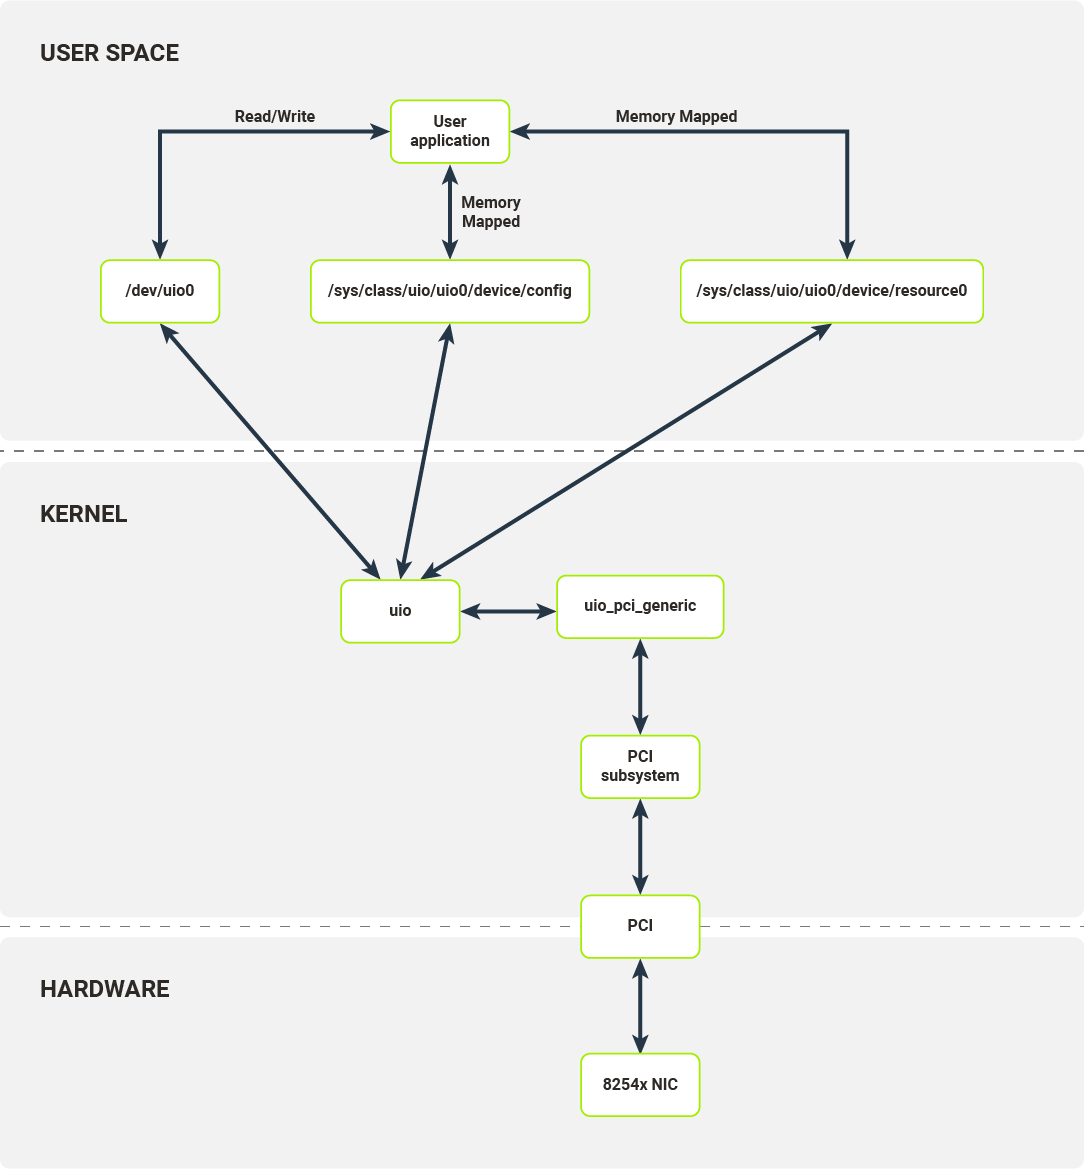 Software layers of a networking stack on Linux when using UIO